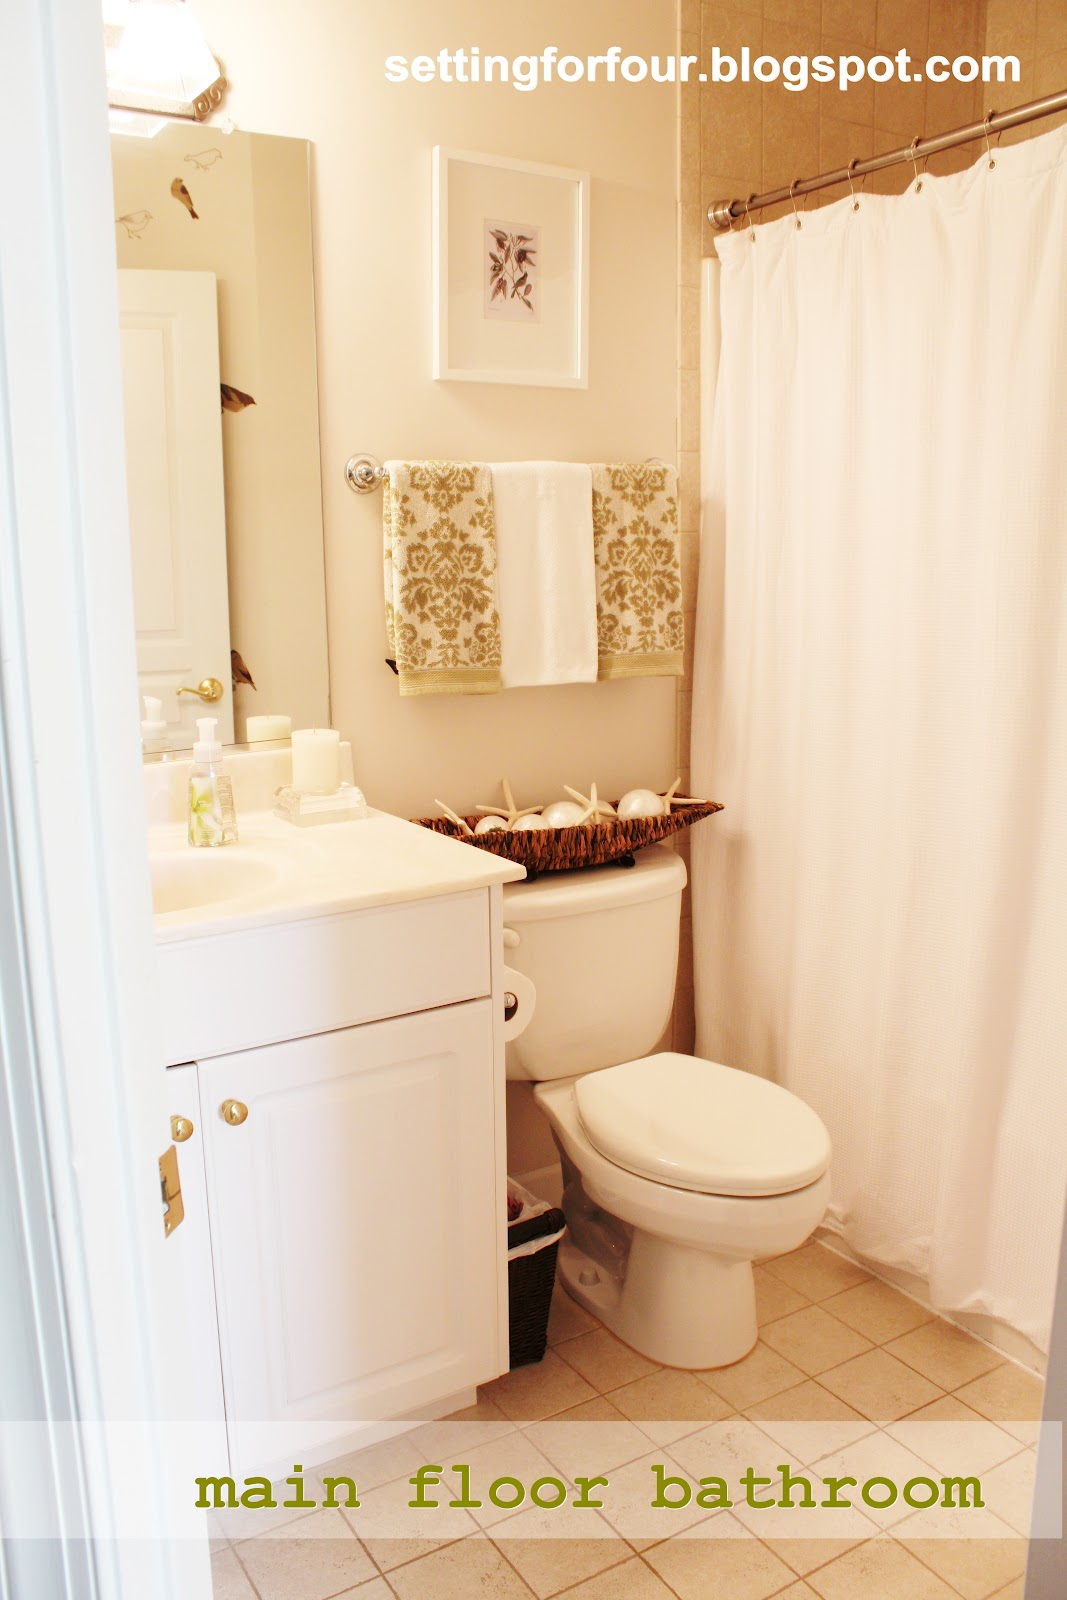 See How I Decorated My Bathroom To Give It A Spa Like Look! Wall Art